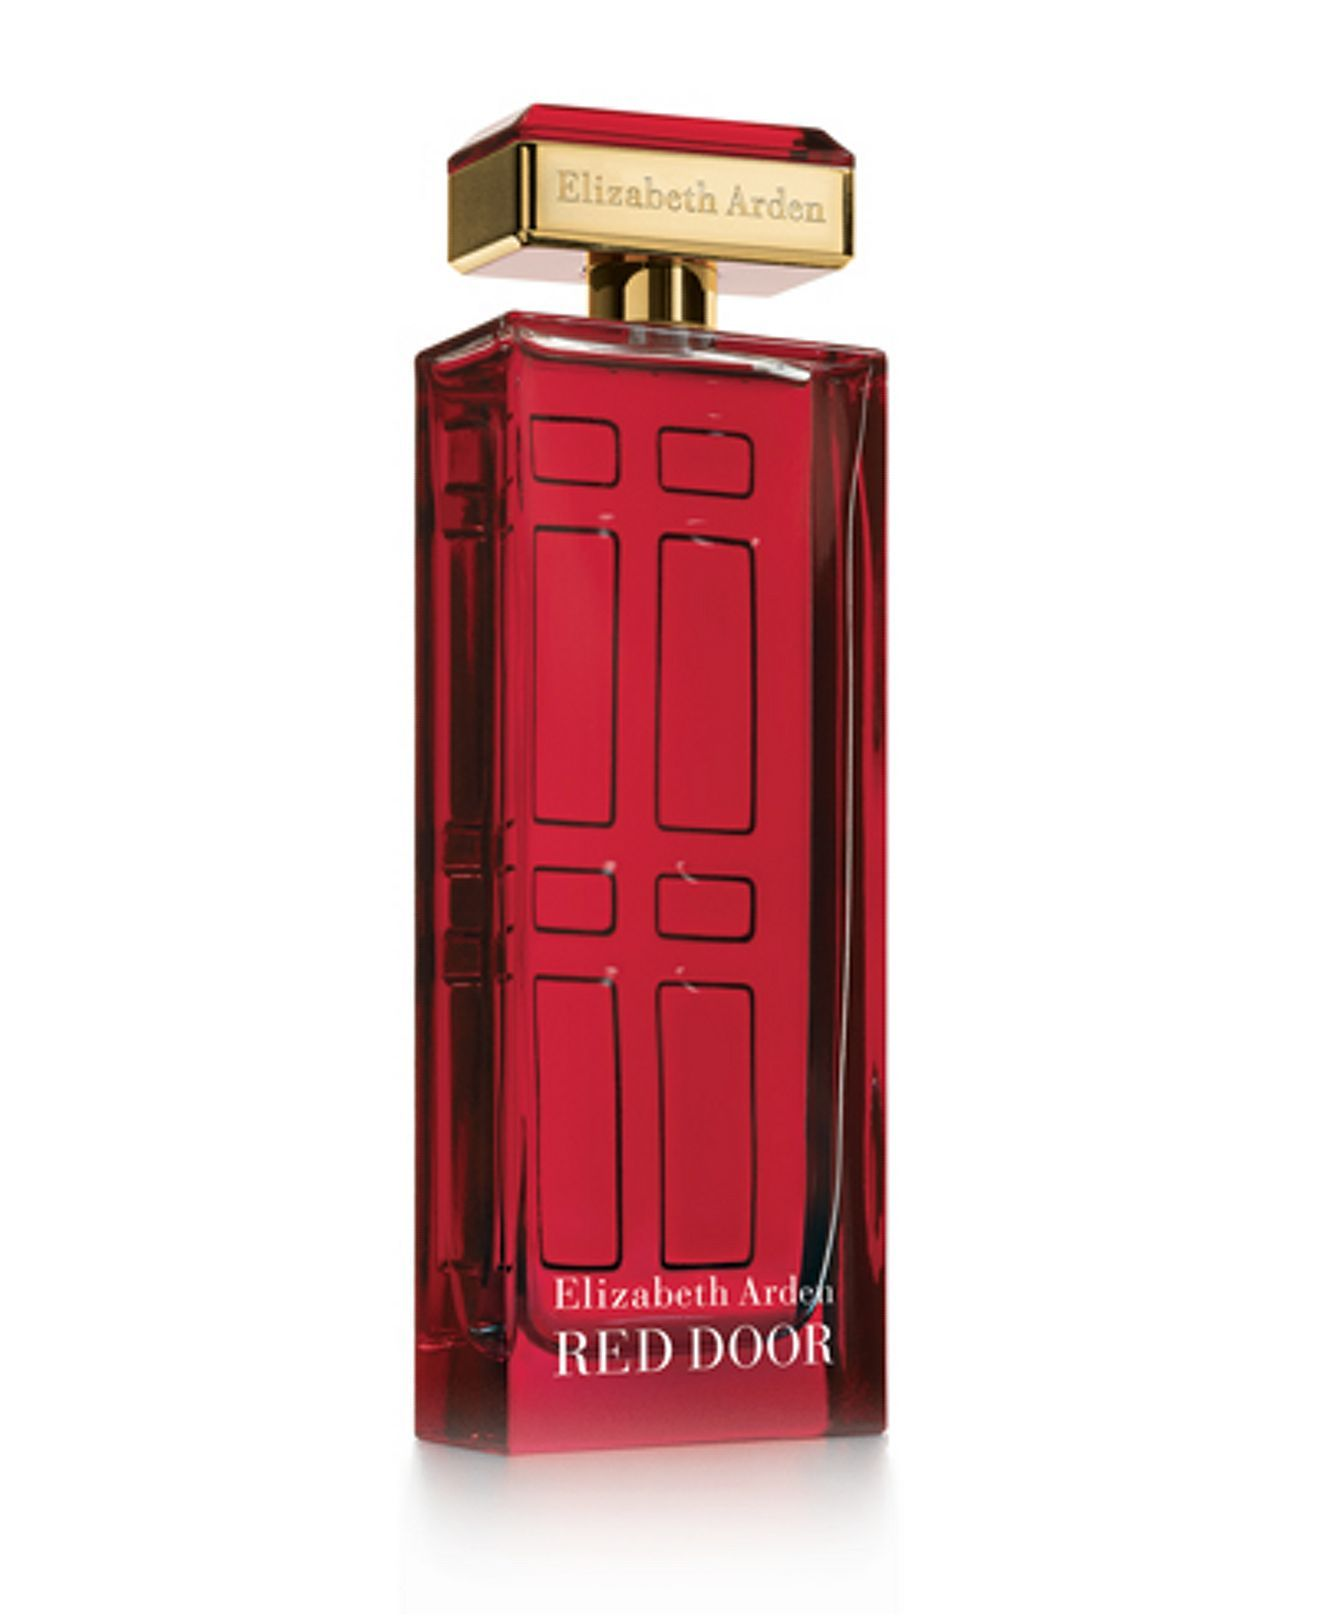 Elizabeth Arden Red Door Eau de Toilette 3.3 oz. - Fragrance - Beauty - Macyu0027s  sc 1 st  Pinterest & Elizabeth Arden Red Door Eau de Toilette 3.3 oz | Perfume Eau de ...